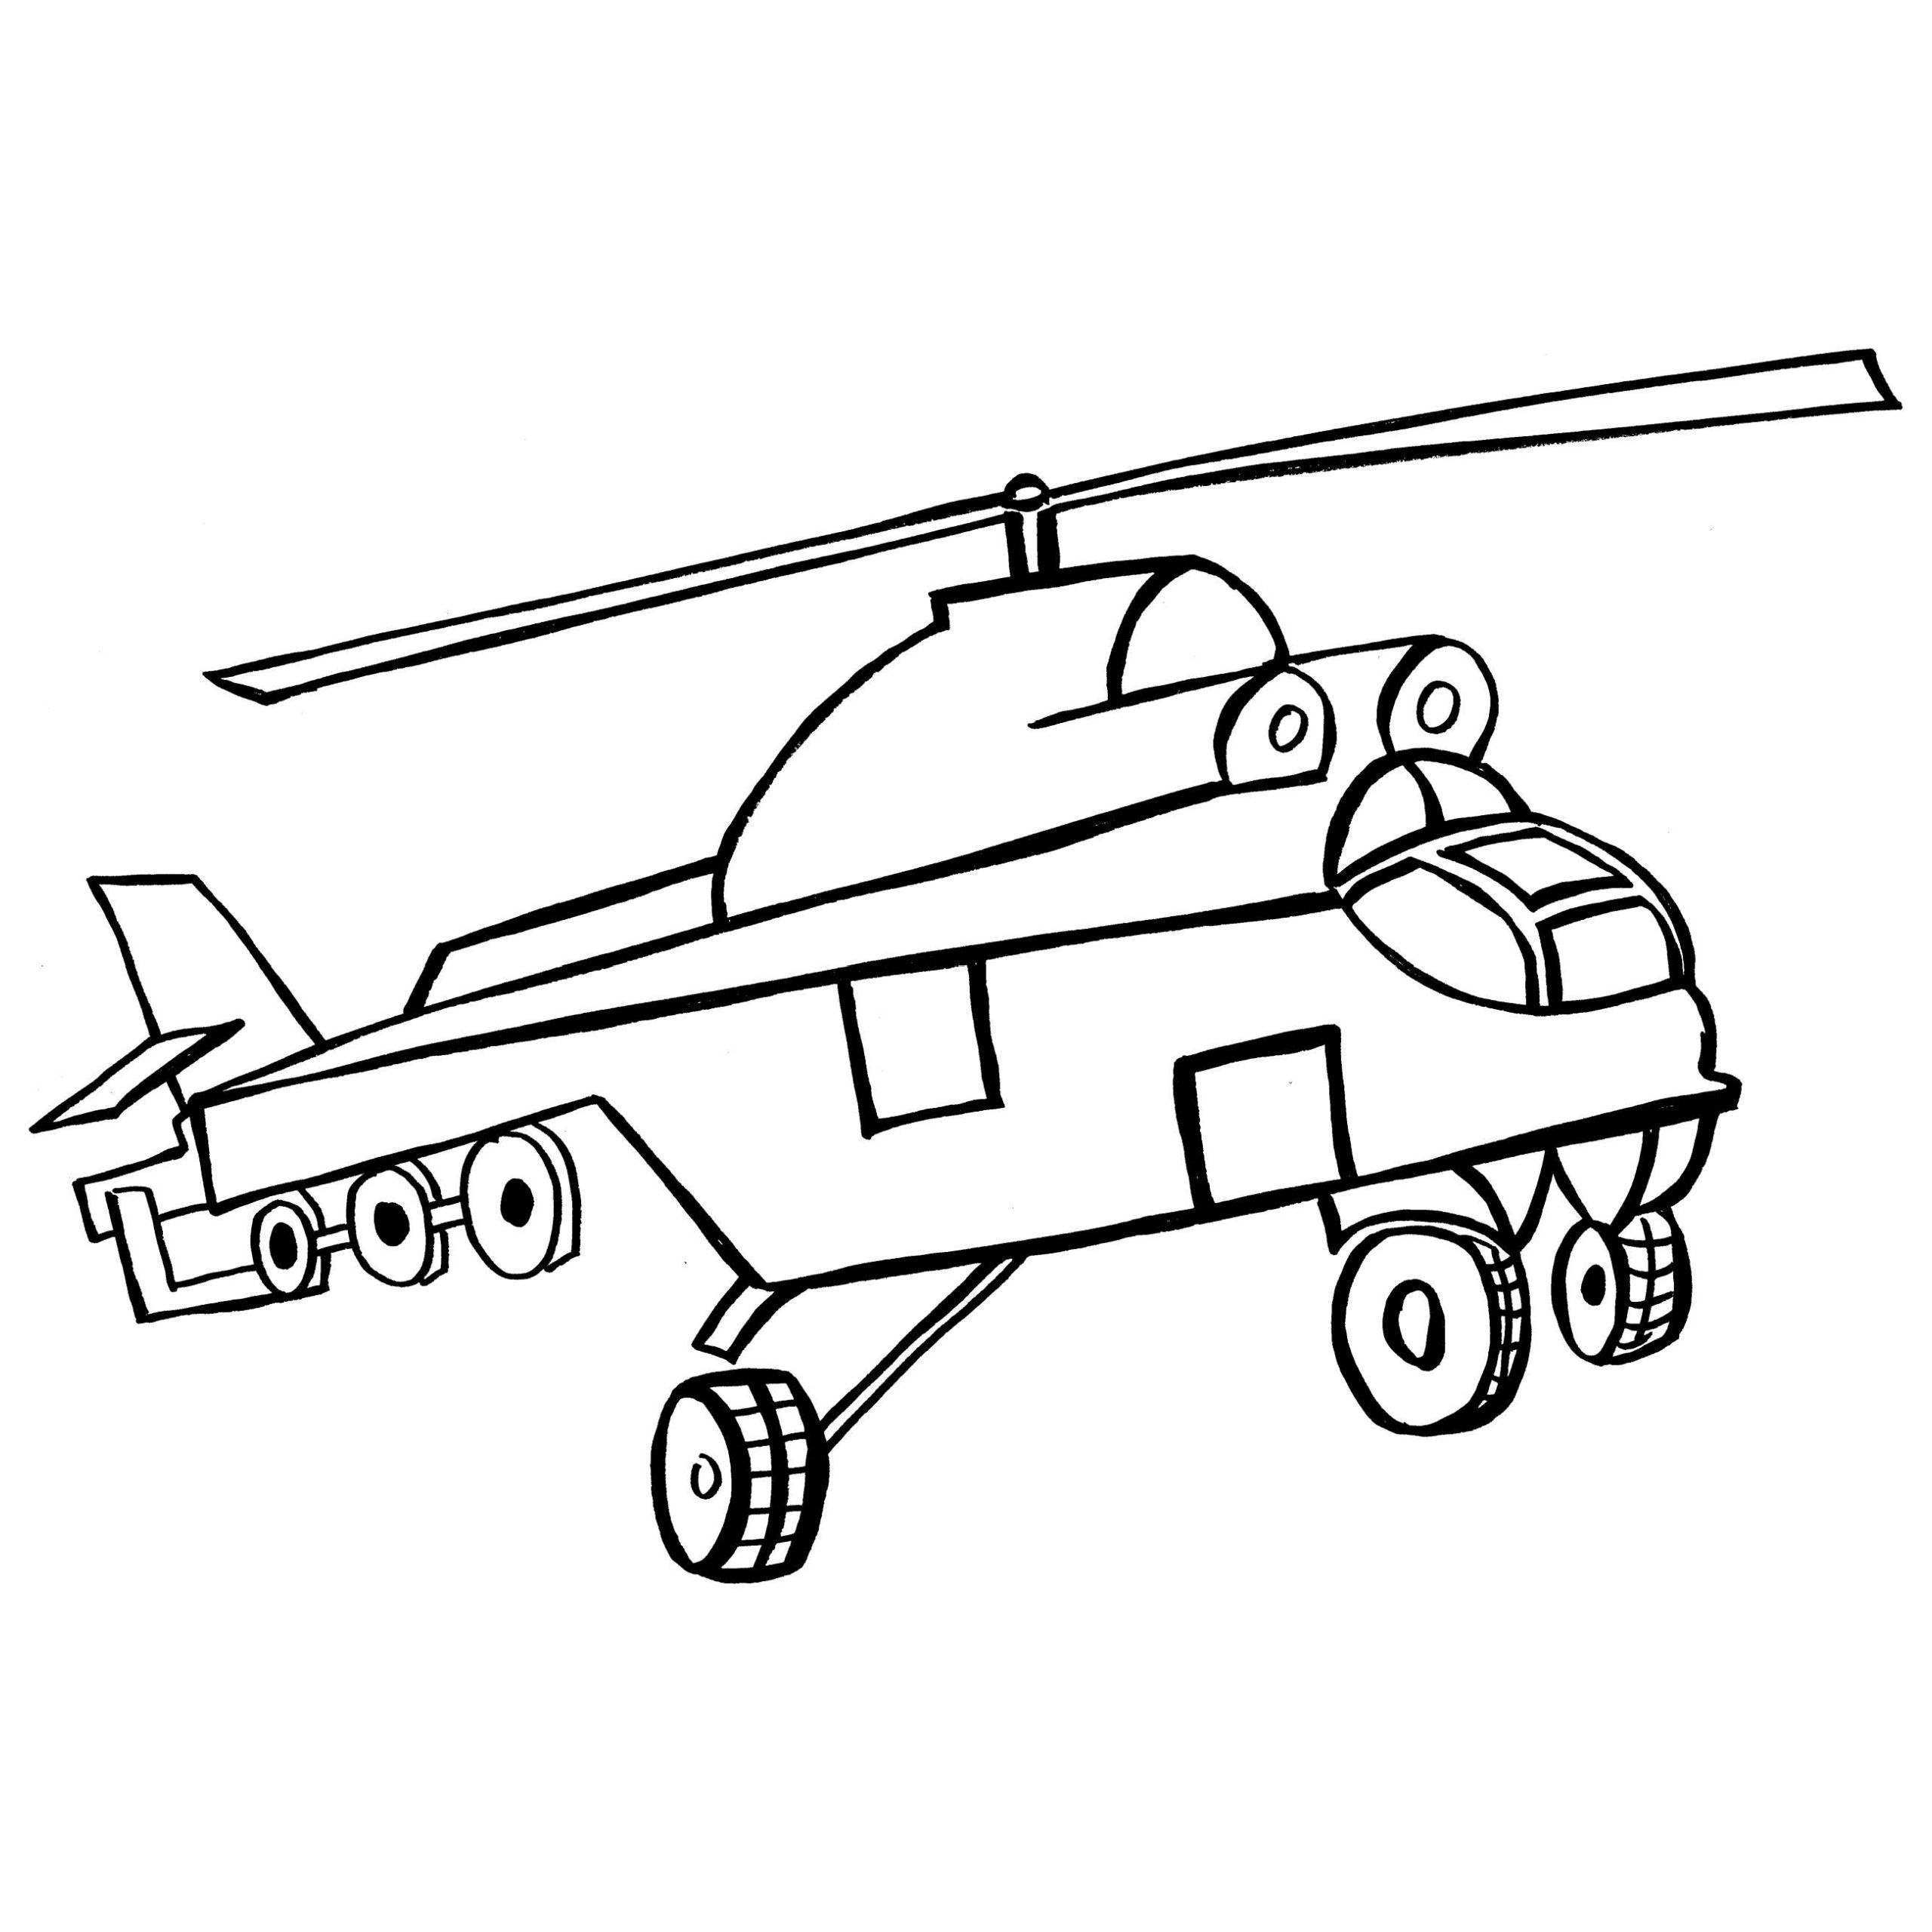 2560x2560 Bonanza Huey Helicopter Coloring Pages Drawing At Getdrawings Com